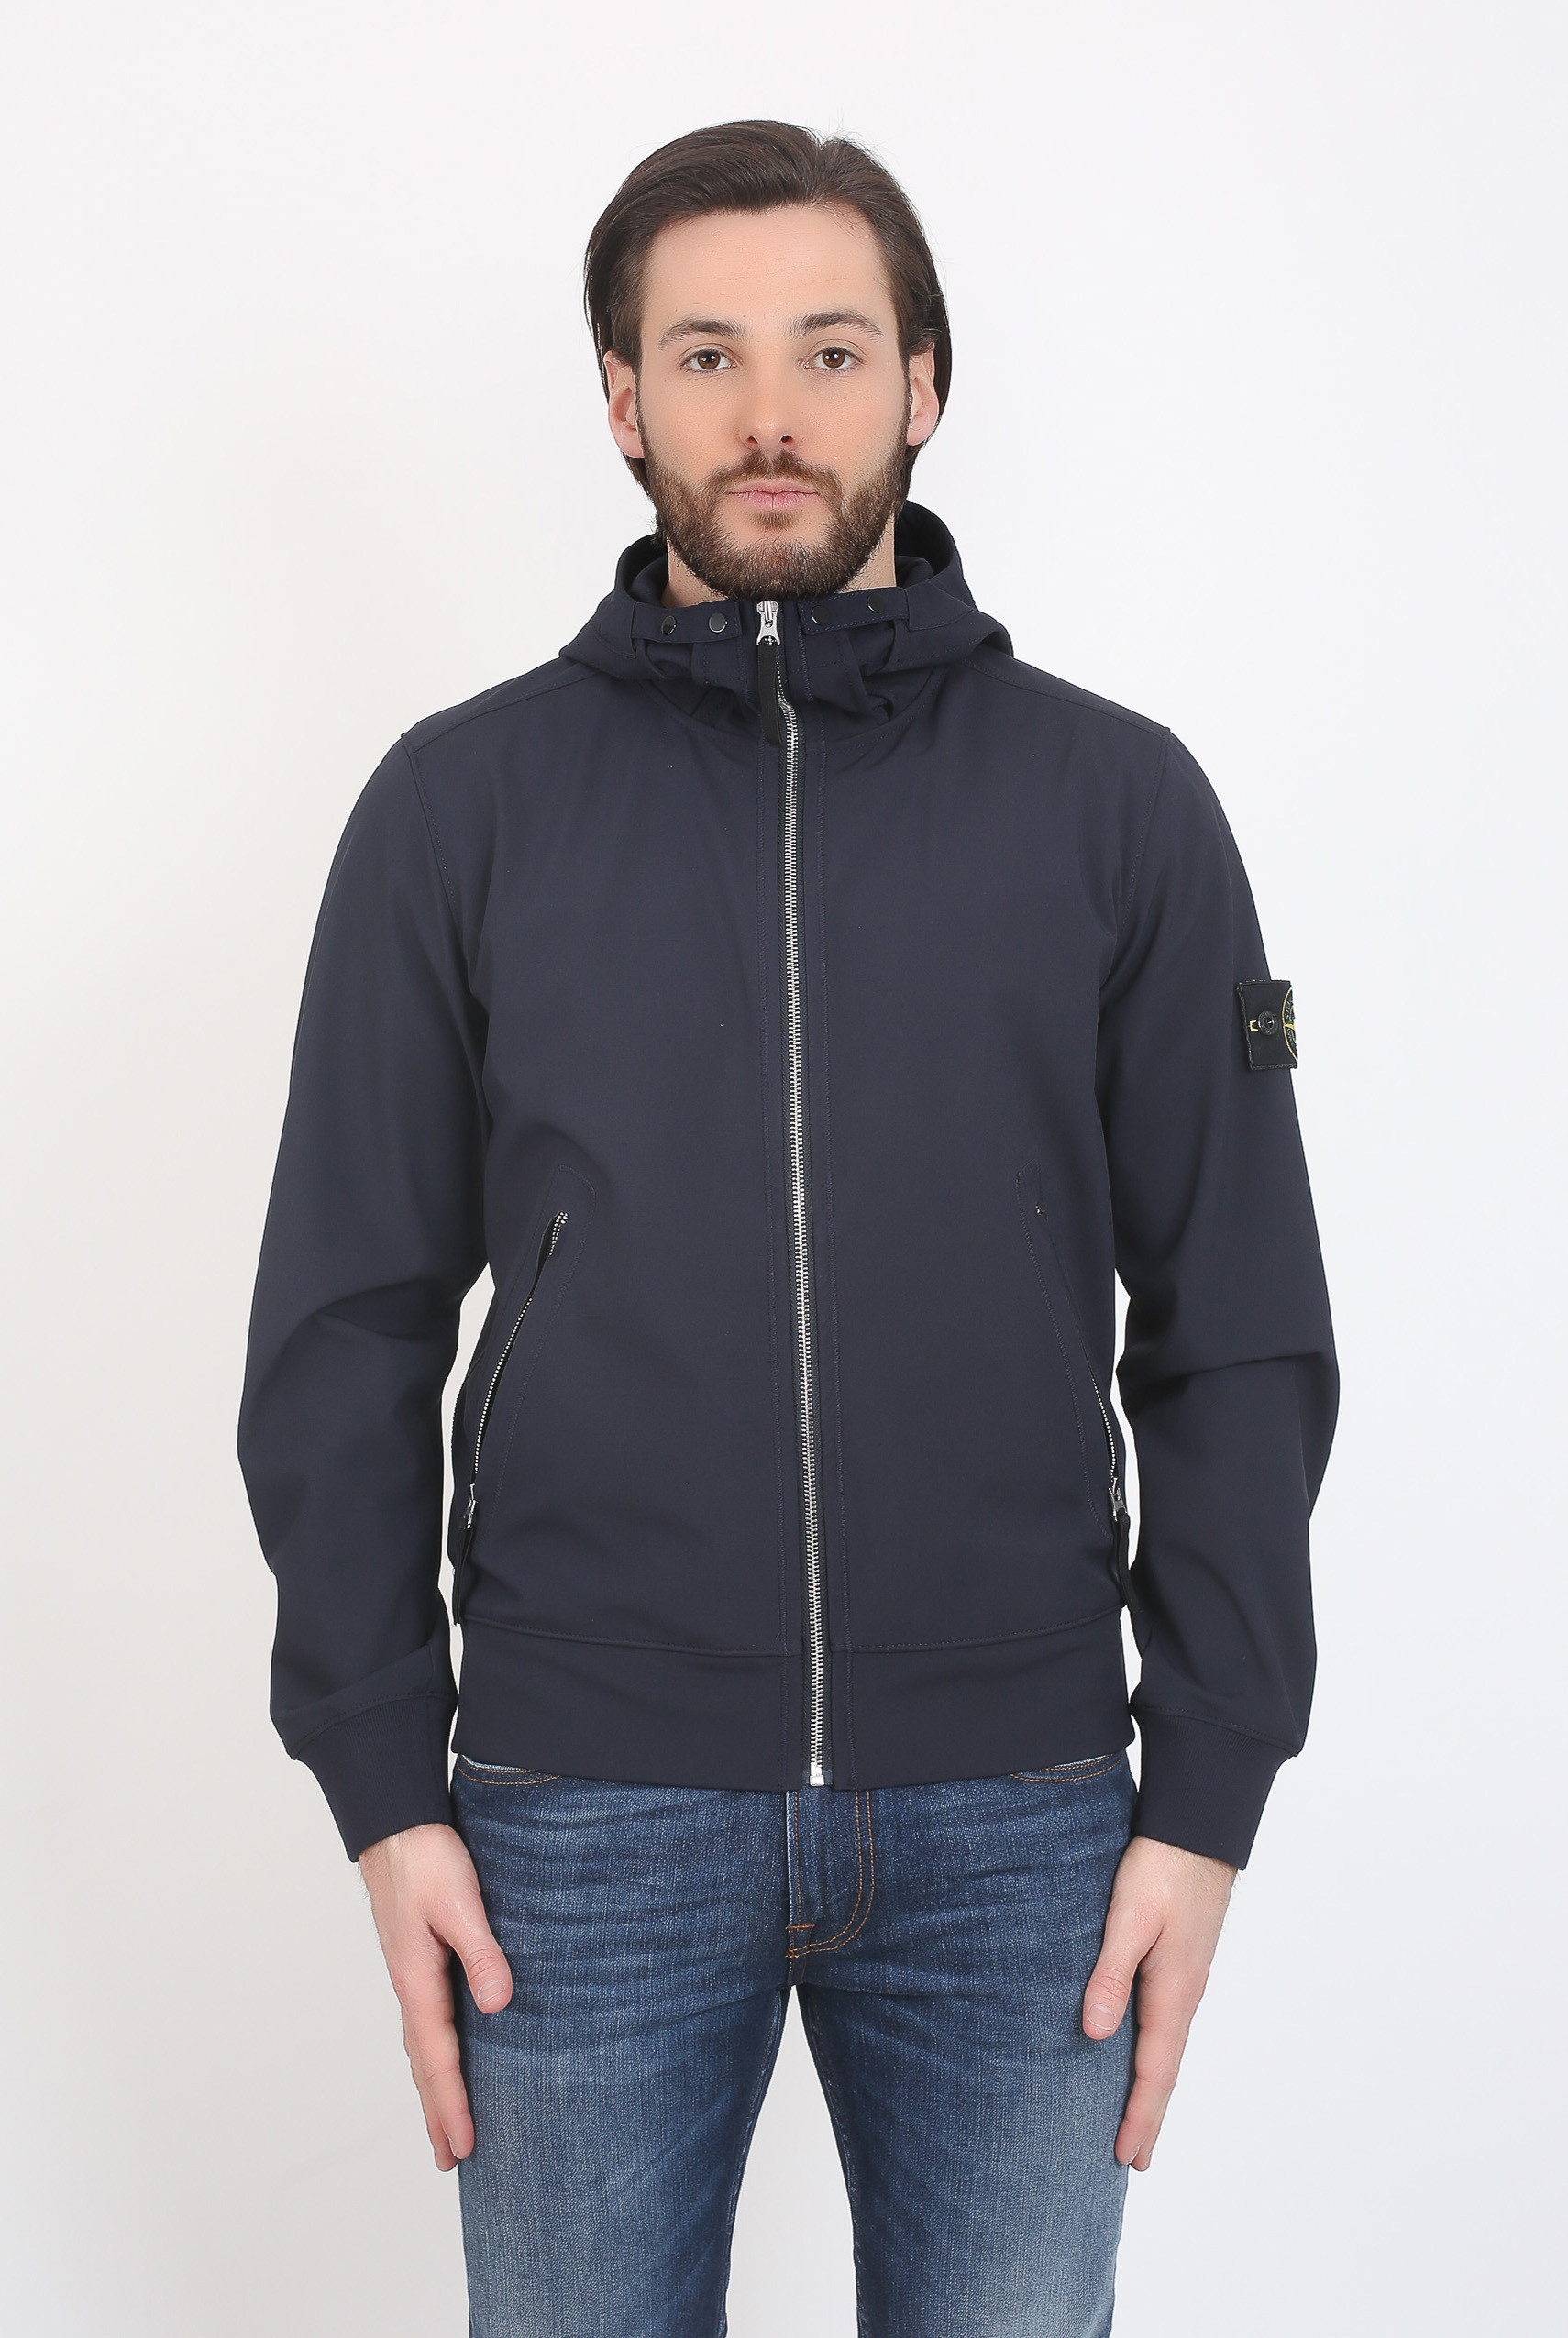 BLOUSON STONE ISLAND LIGHT SOFT SHELL-R MARINE 681540827-V0020